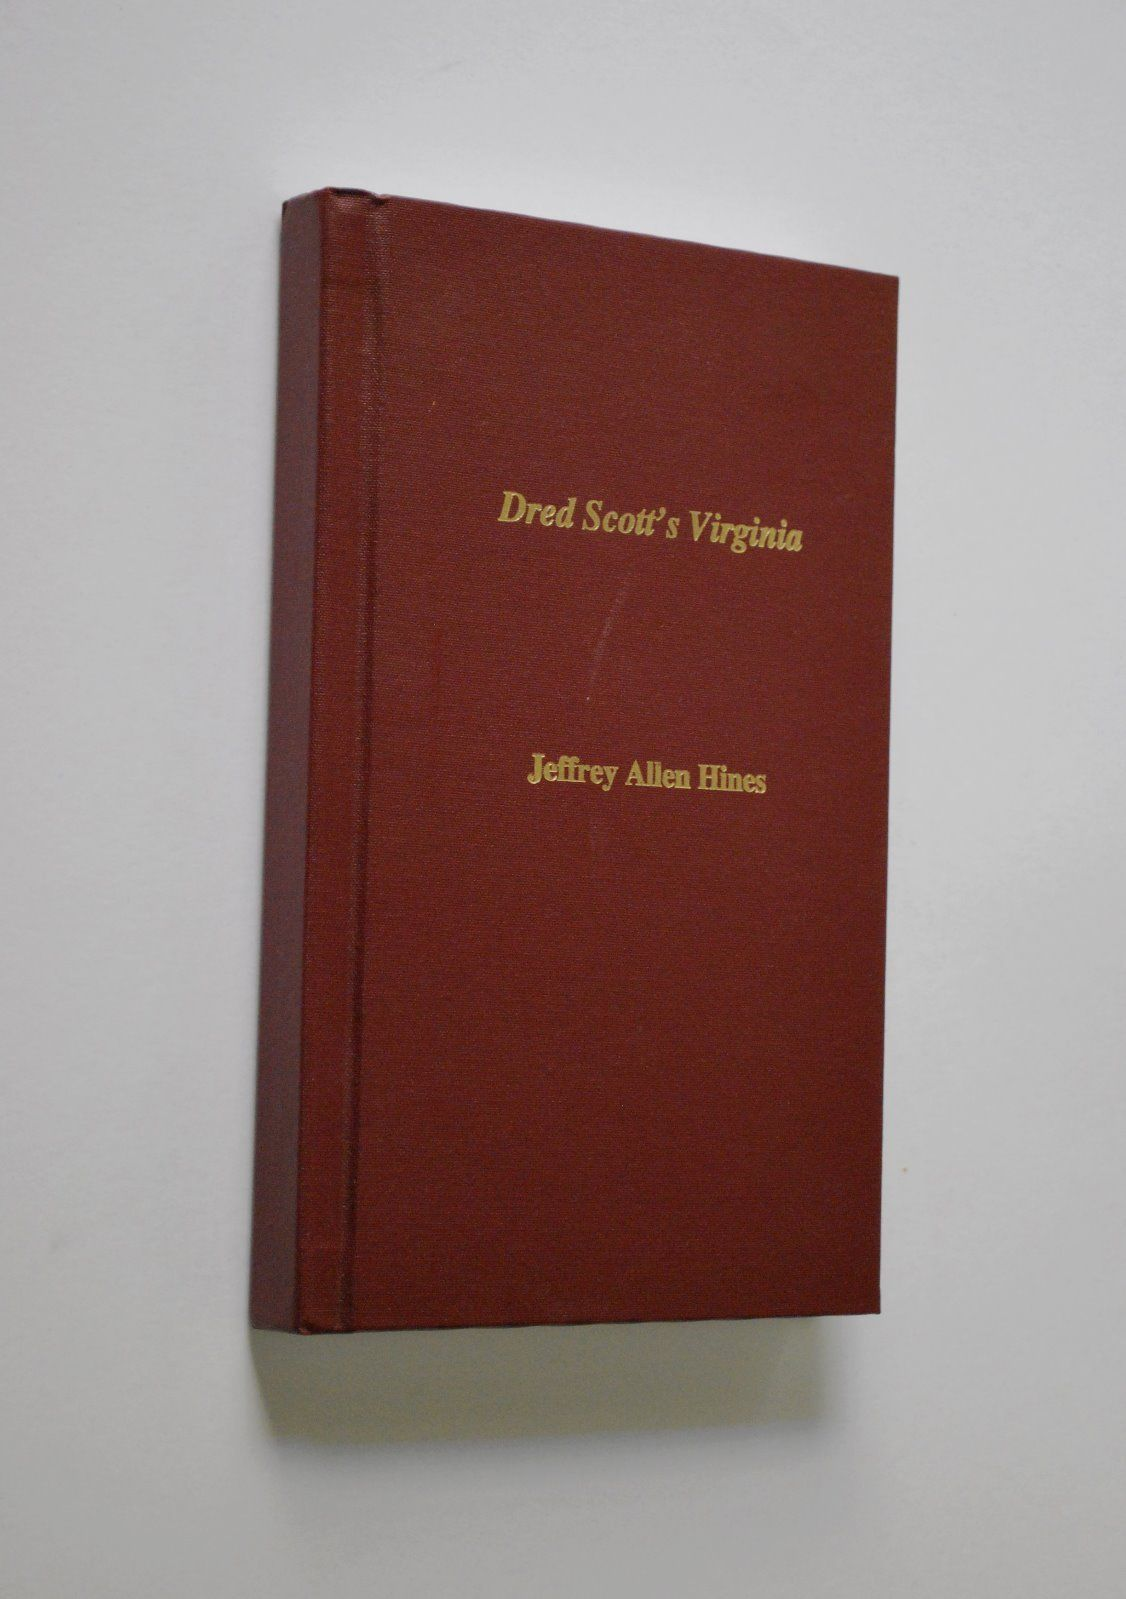 Primary image for Dred Scott's Virginia by Jeffrey Allen Hines (2012) Hardcover